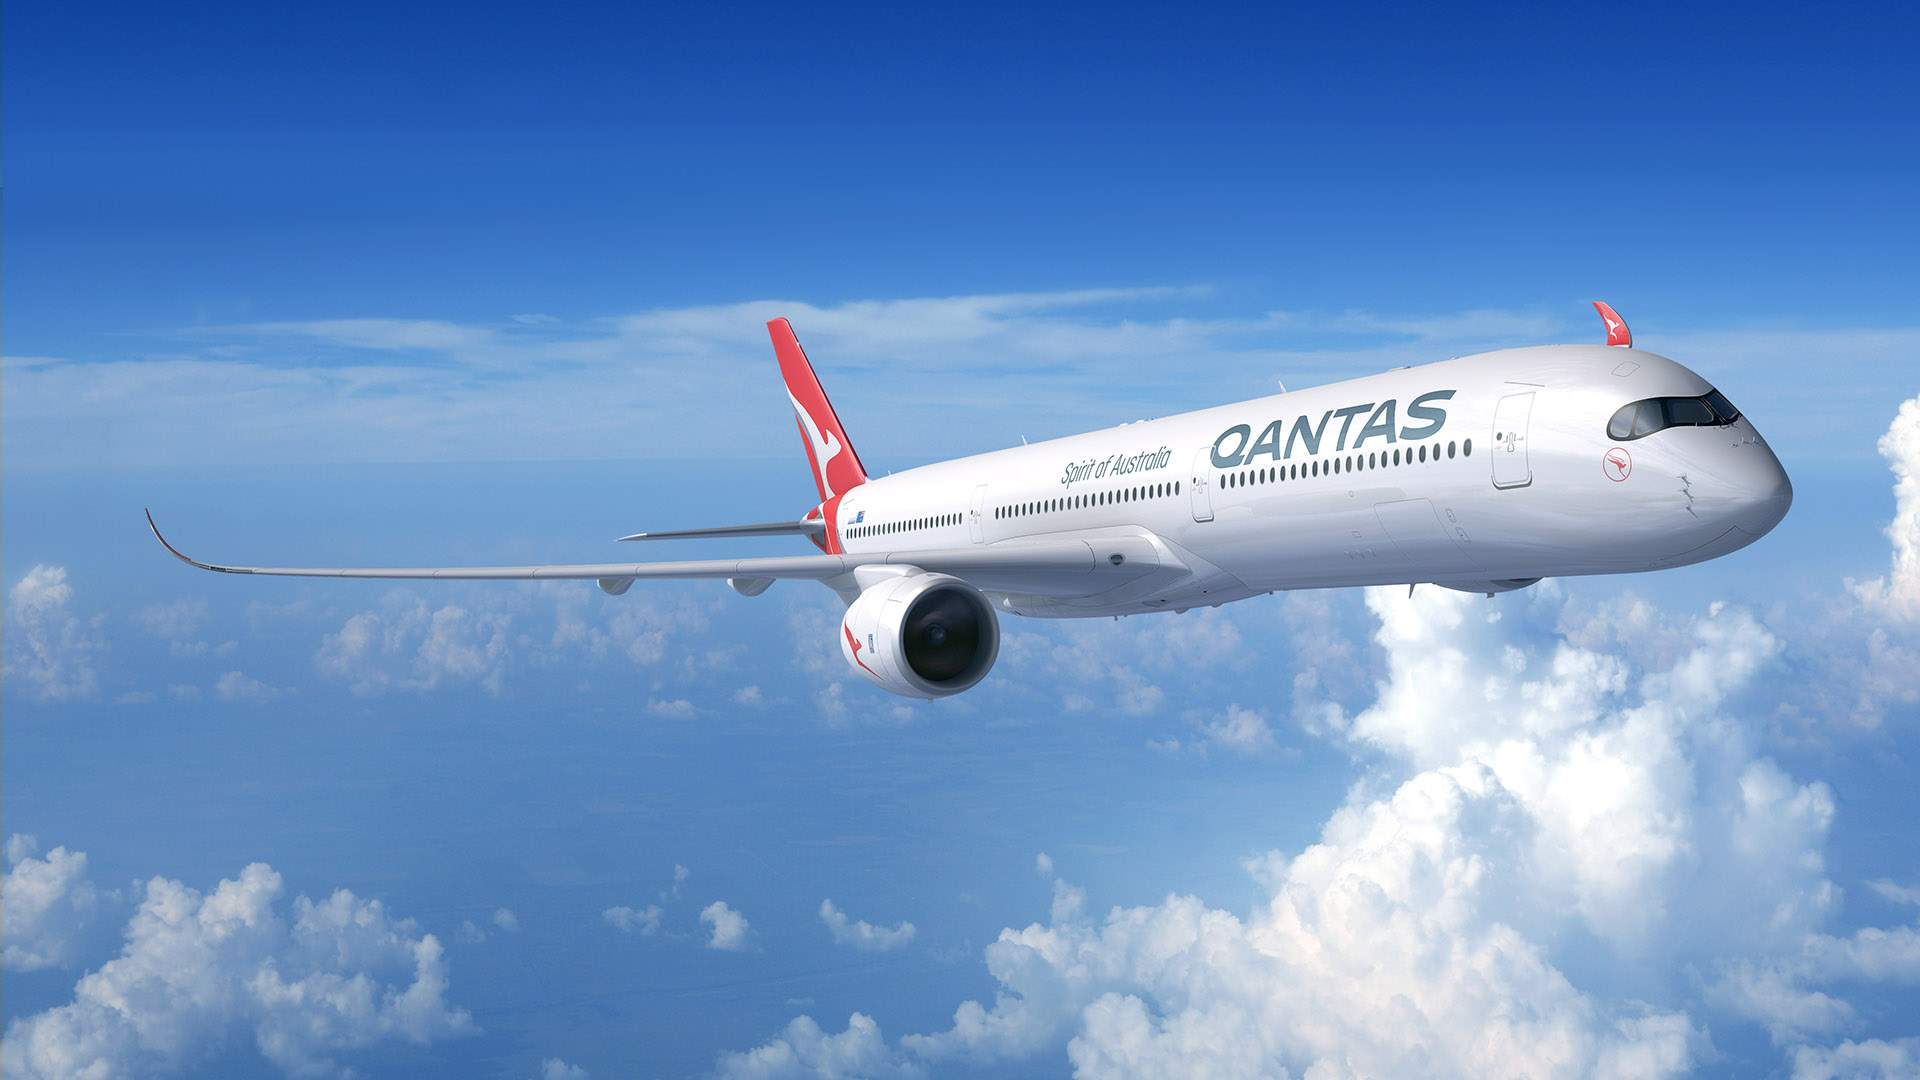 Qantas Has Delayed Its Decision On Direct Flights From the East Coast to New York and London